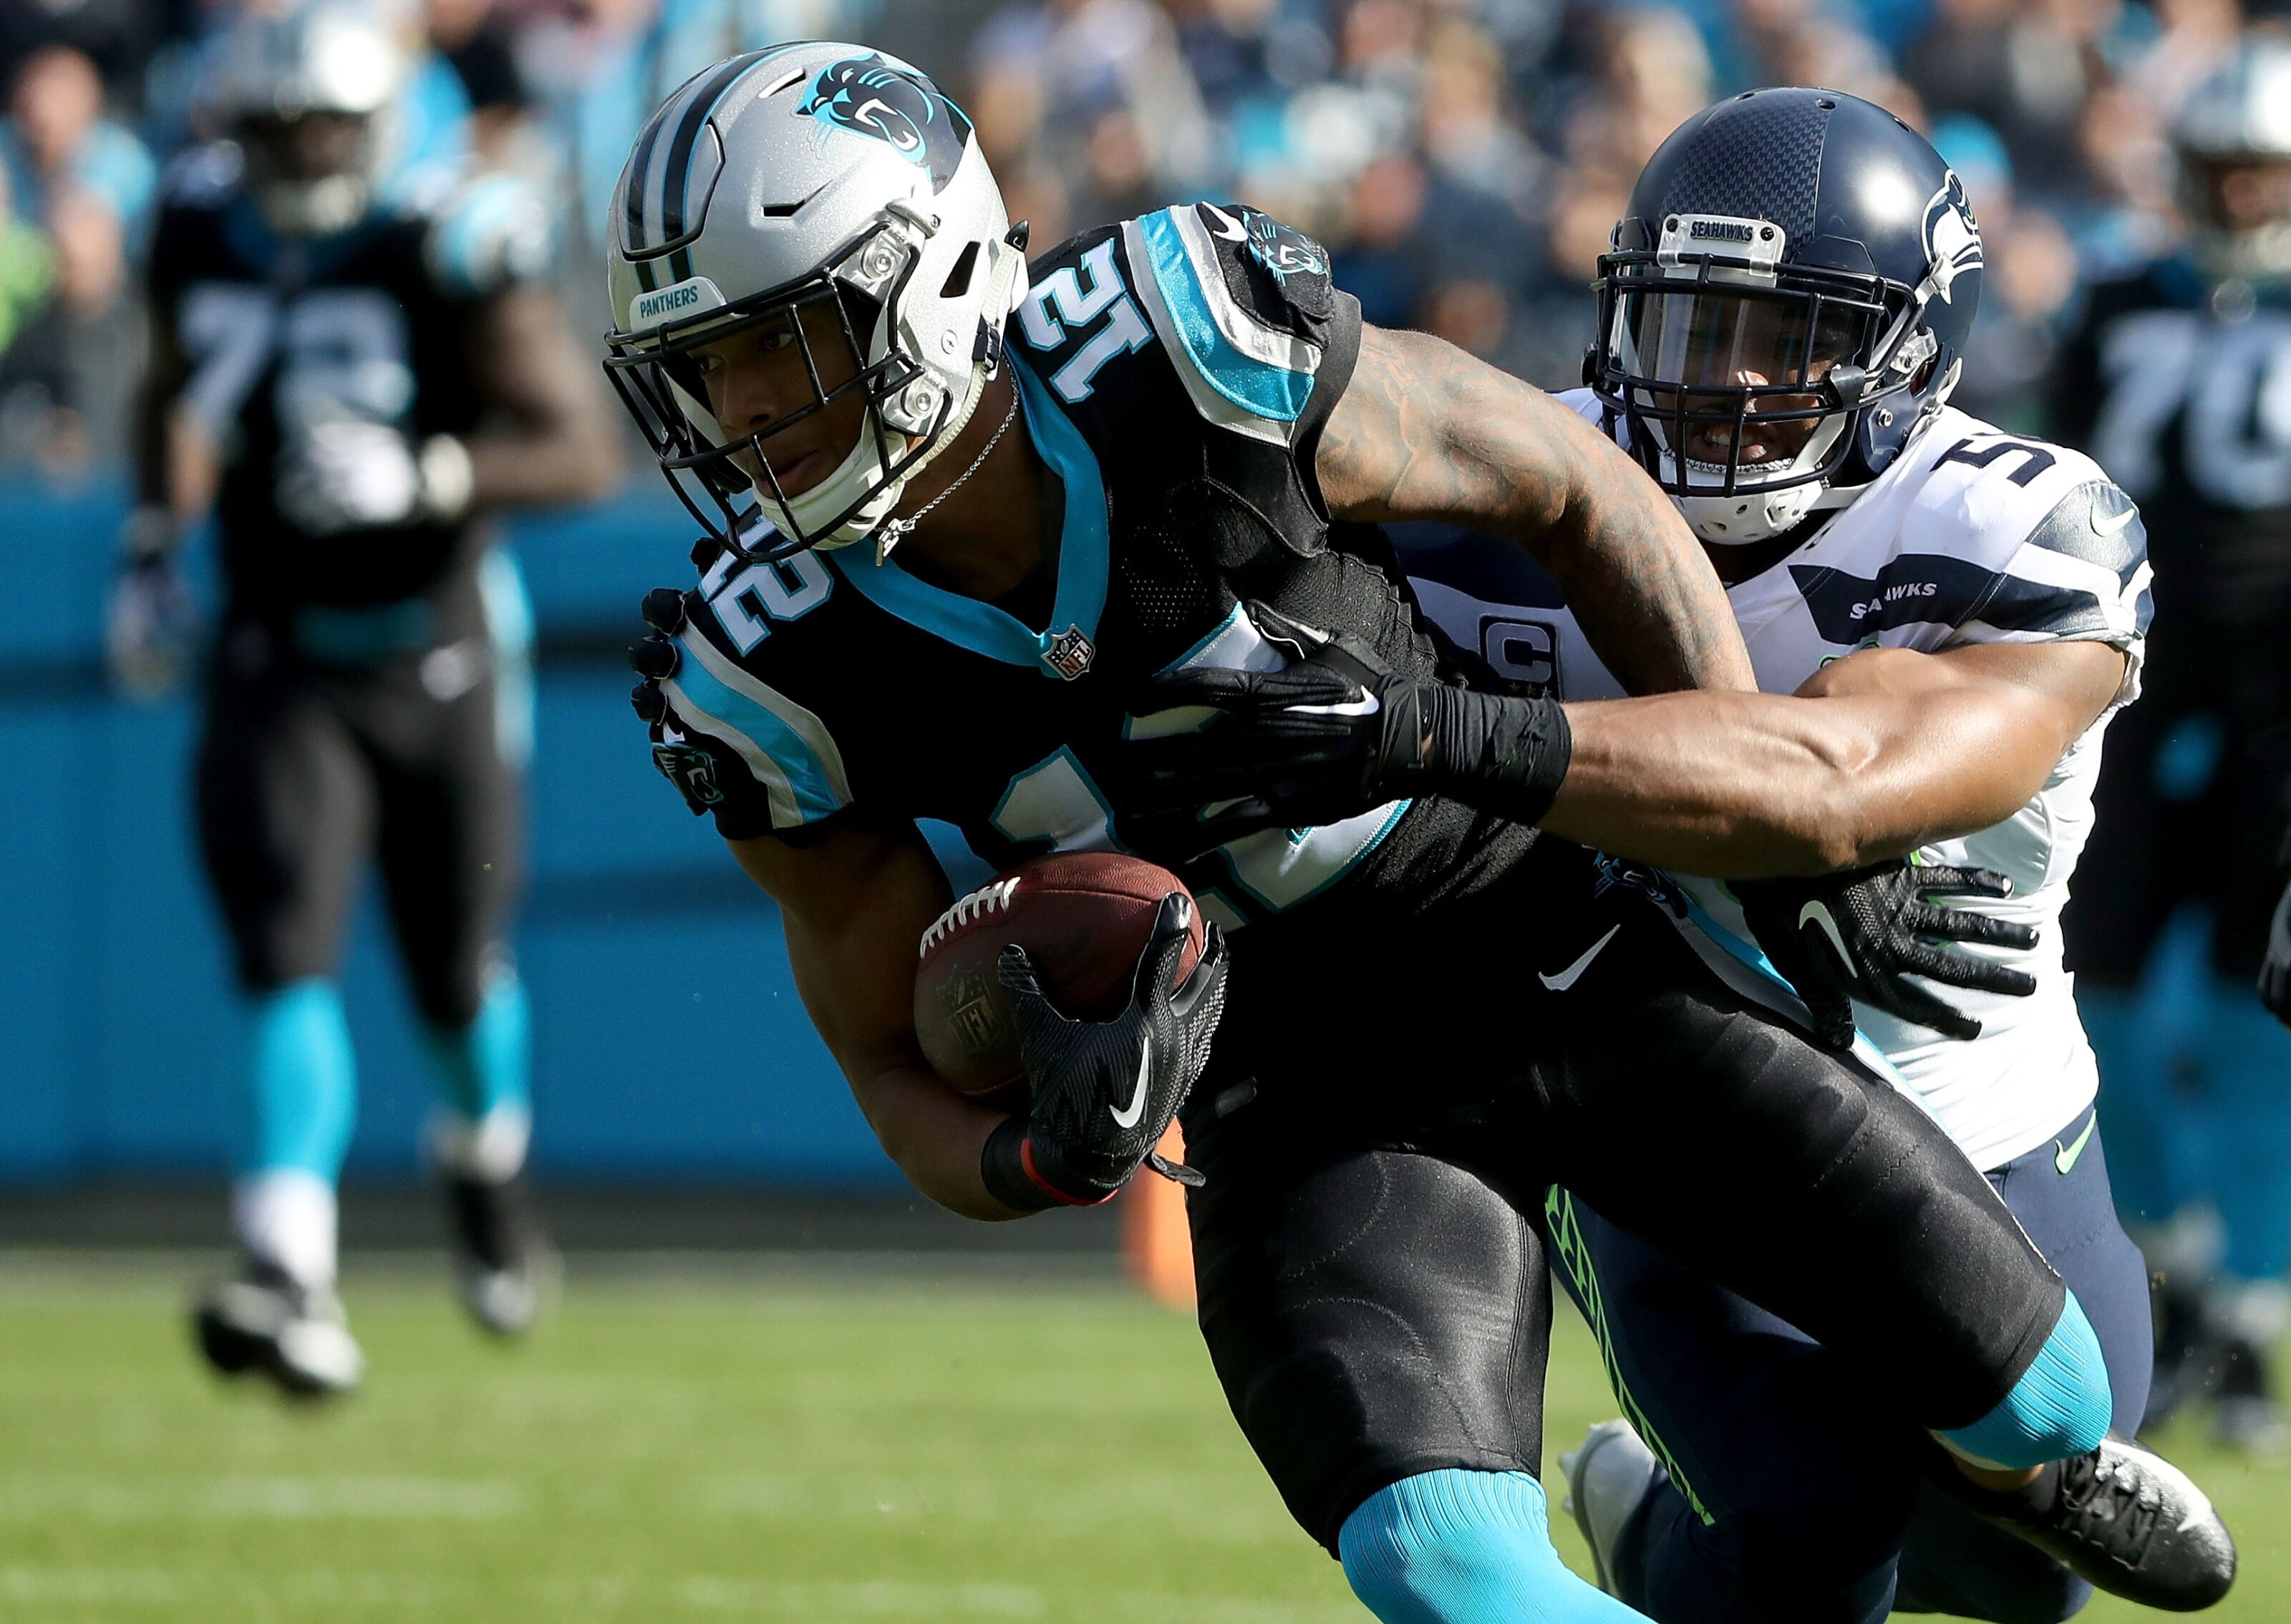 Carolina Panthers: D.J. Moore still the best rookie wide receiver